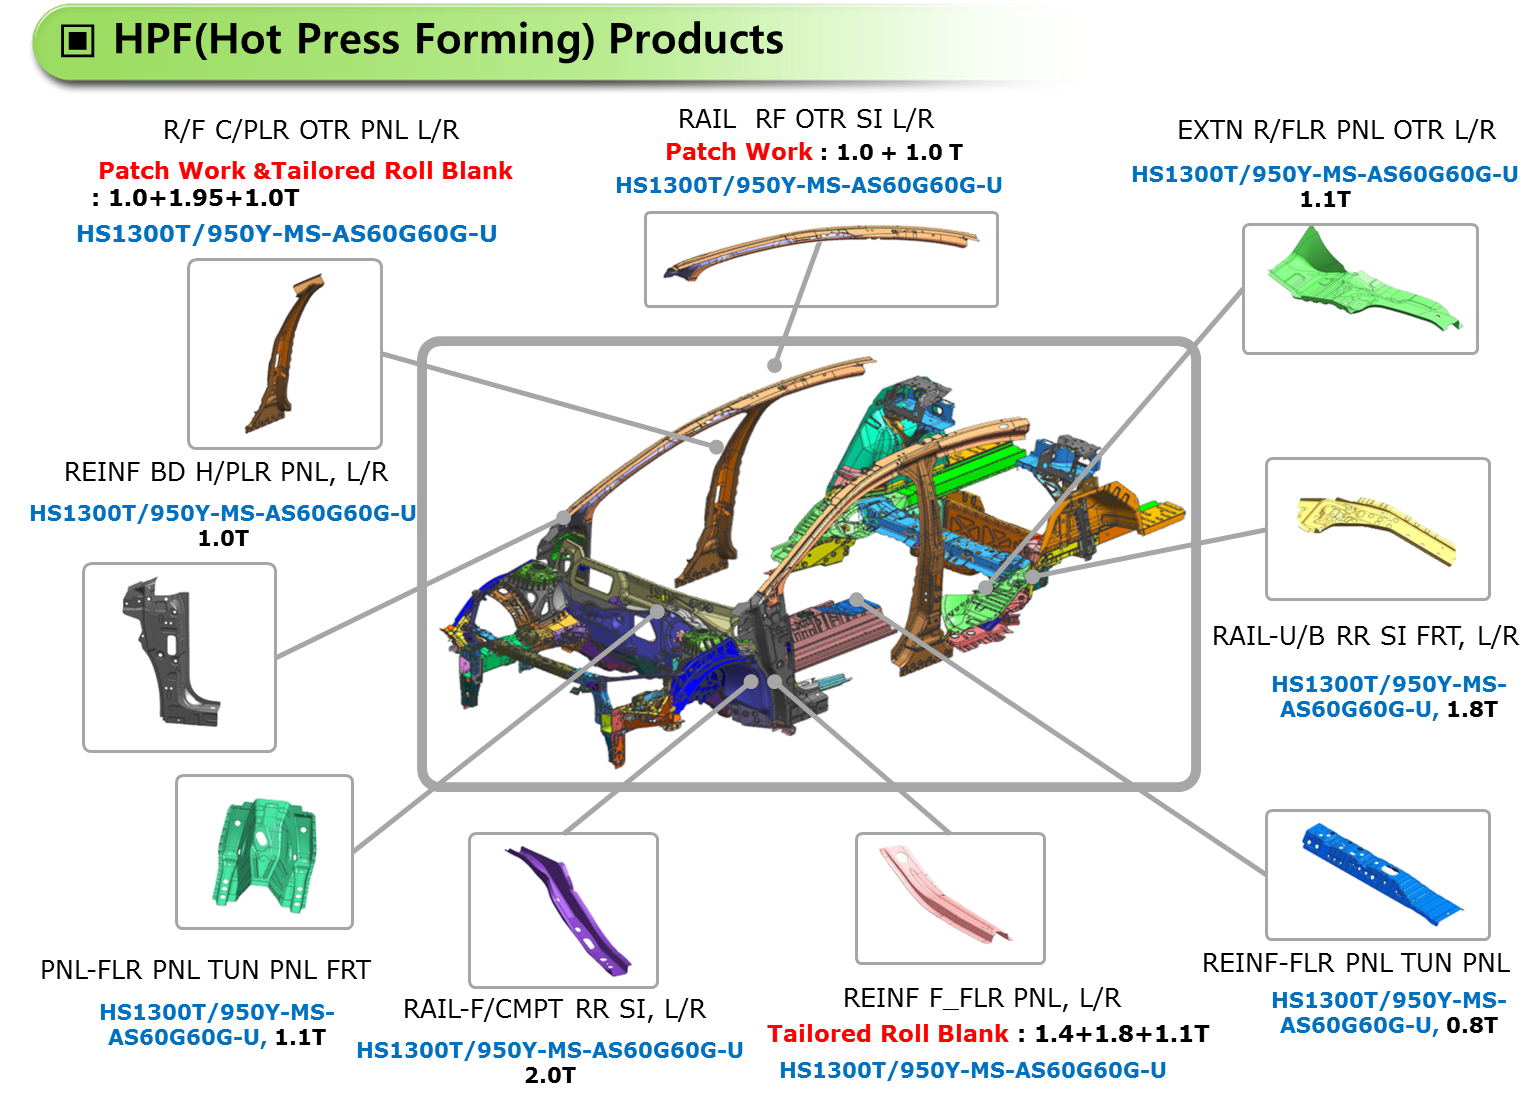 production technology of Hot Press Forming